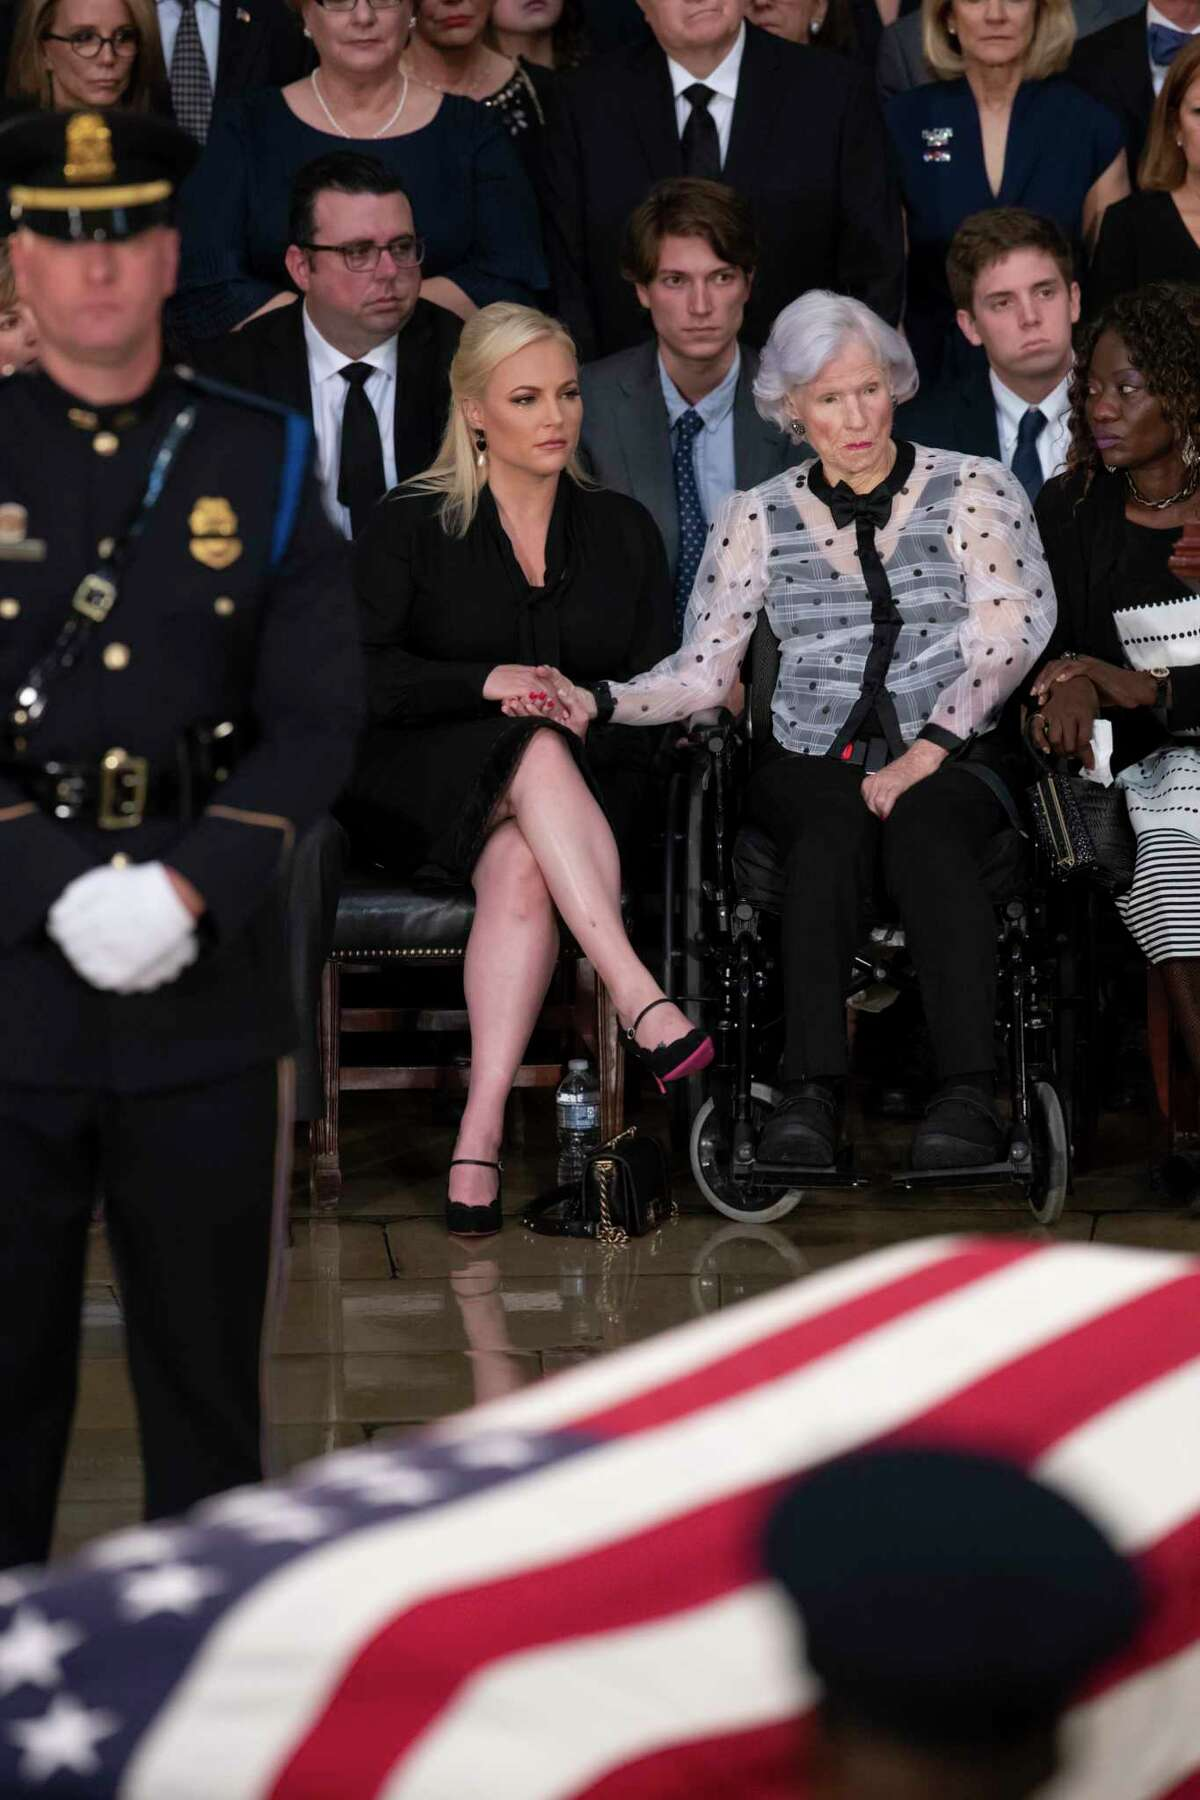 John McCain's daughter Meghan McCain, left, is comforted by his 106-year-old mother Roberta McCain, right, as the flag-draped casket bearing the remains of Sen. John McCain of Arizona, who lived and worked in Congress over four decades, is carried into the U.S. Capitol rotunda for a farewell ceremony and public visitation, Friday, Aug. 31, 2018, in Washington. (AP Photo/J. Scott Applewhite)